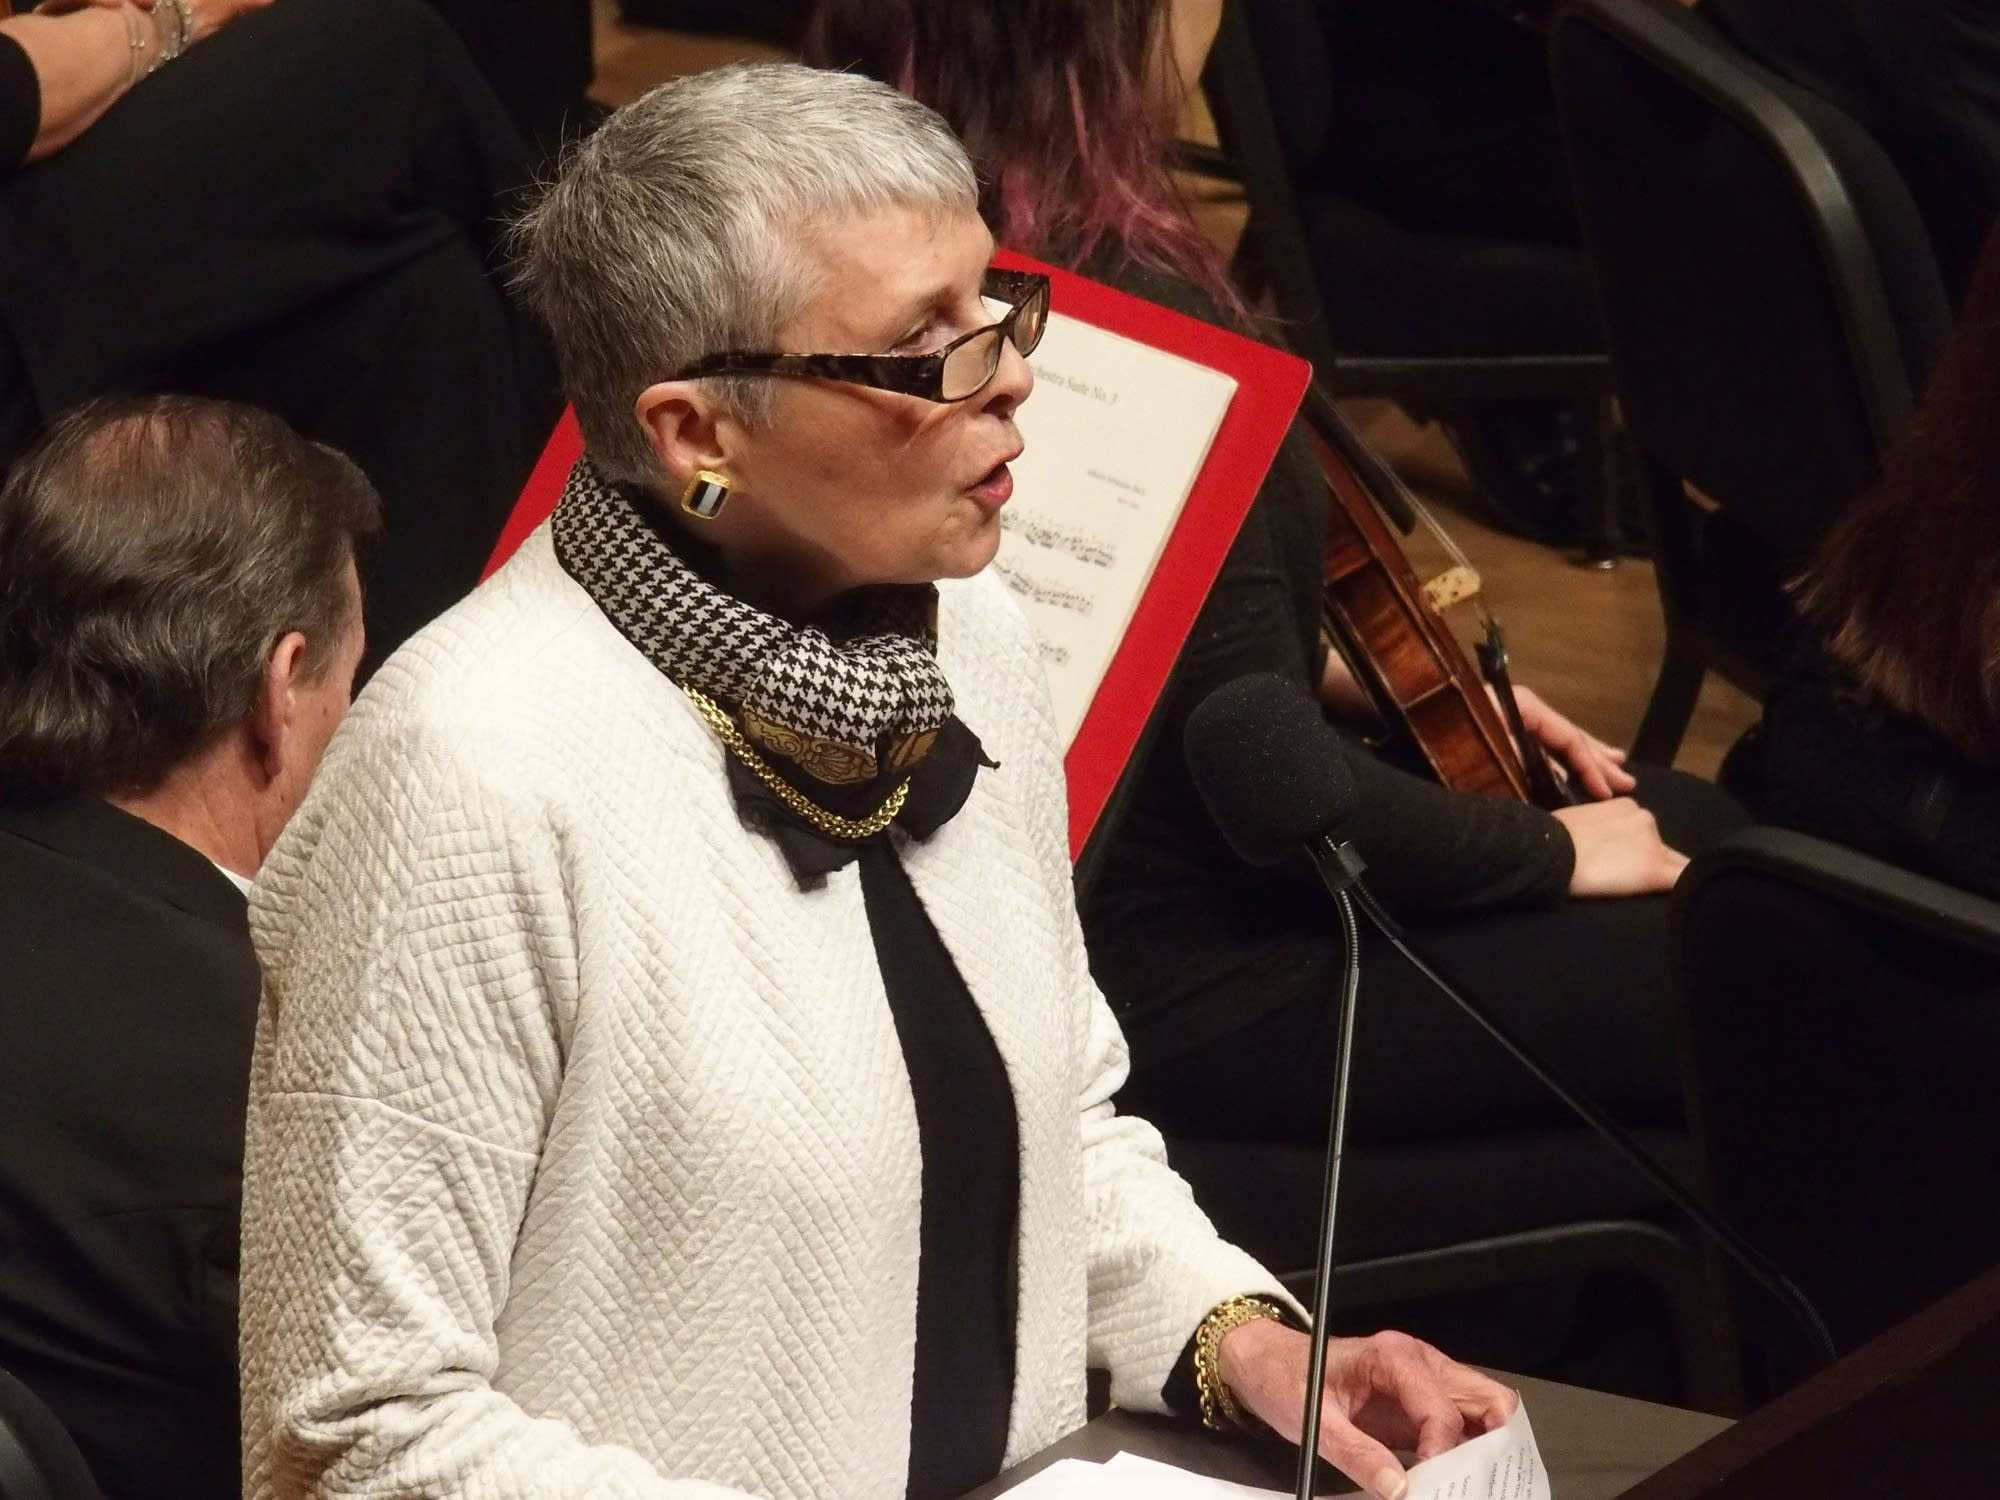 Linda Hoeschler, past chair of the American Composers Forum